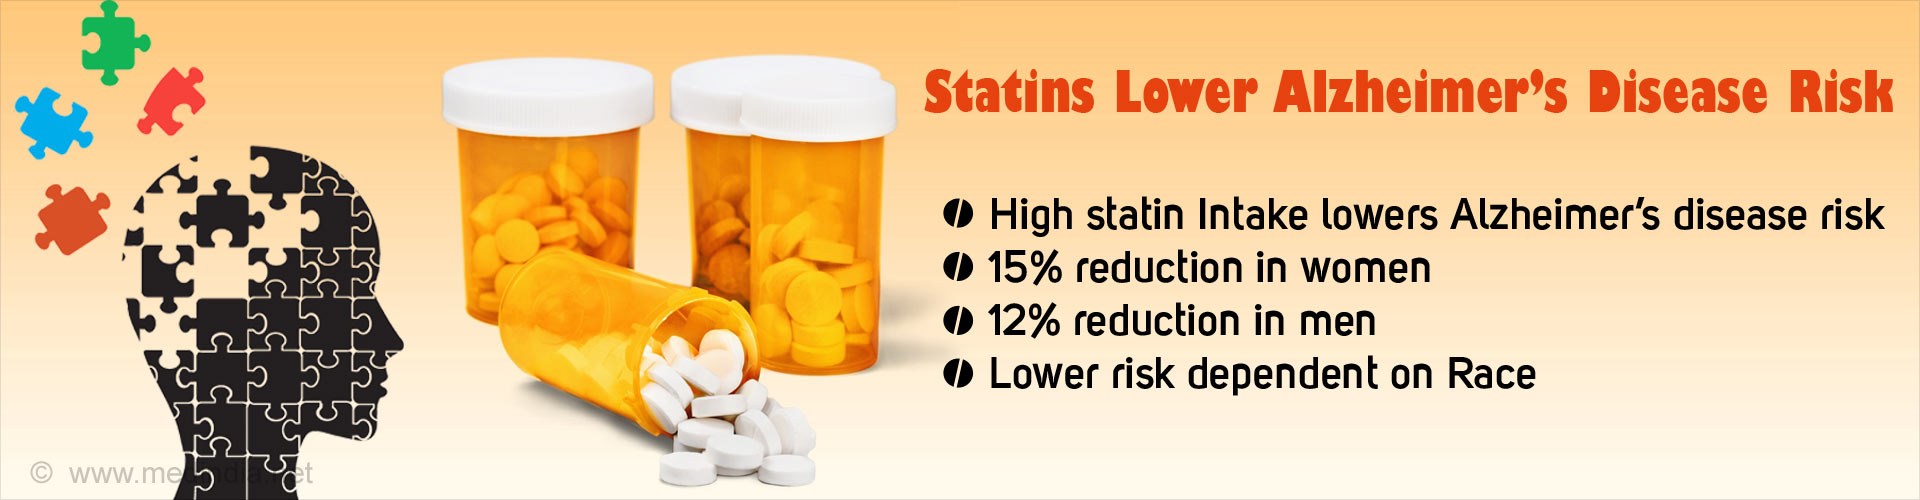 Statins Lower Risk for Alzheimer's Disease